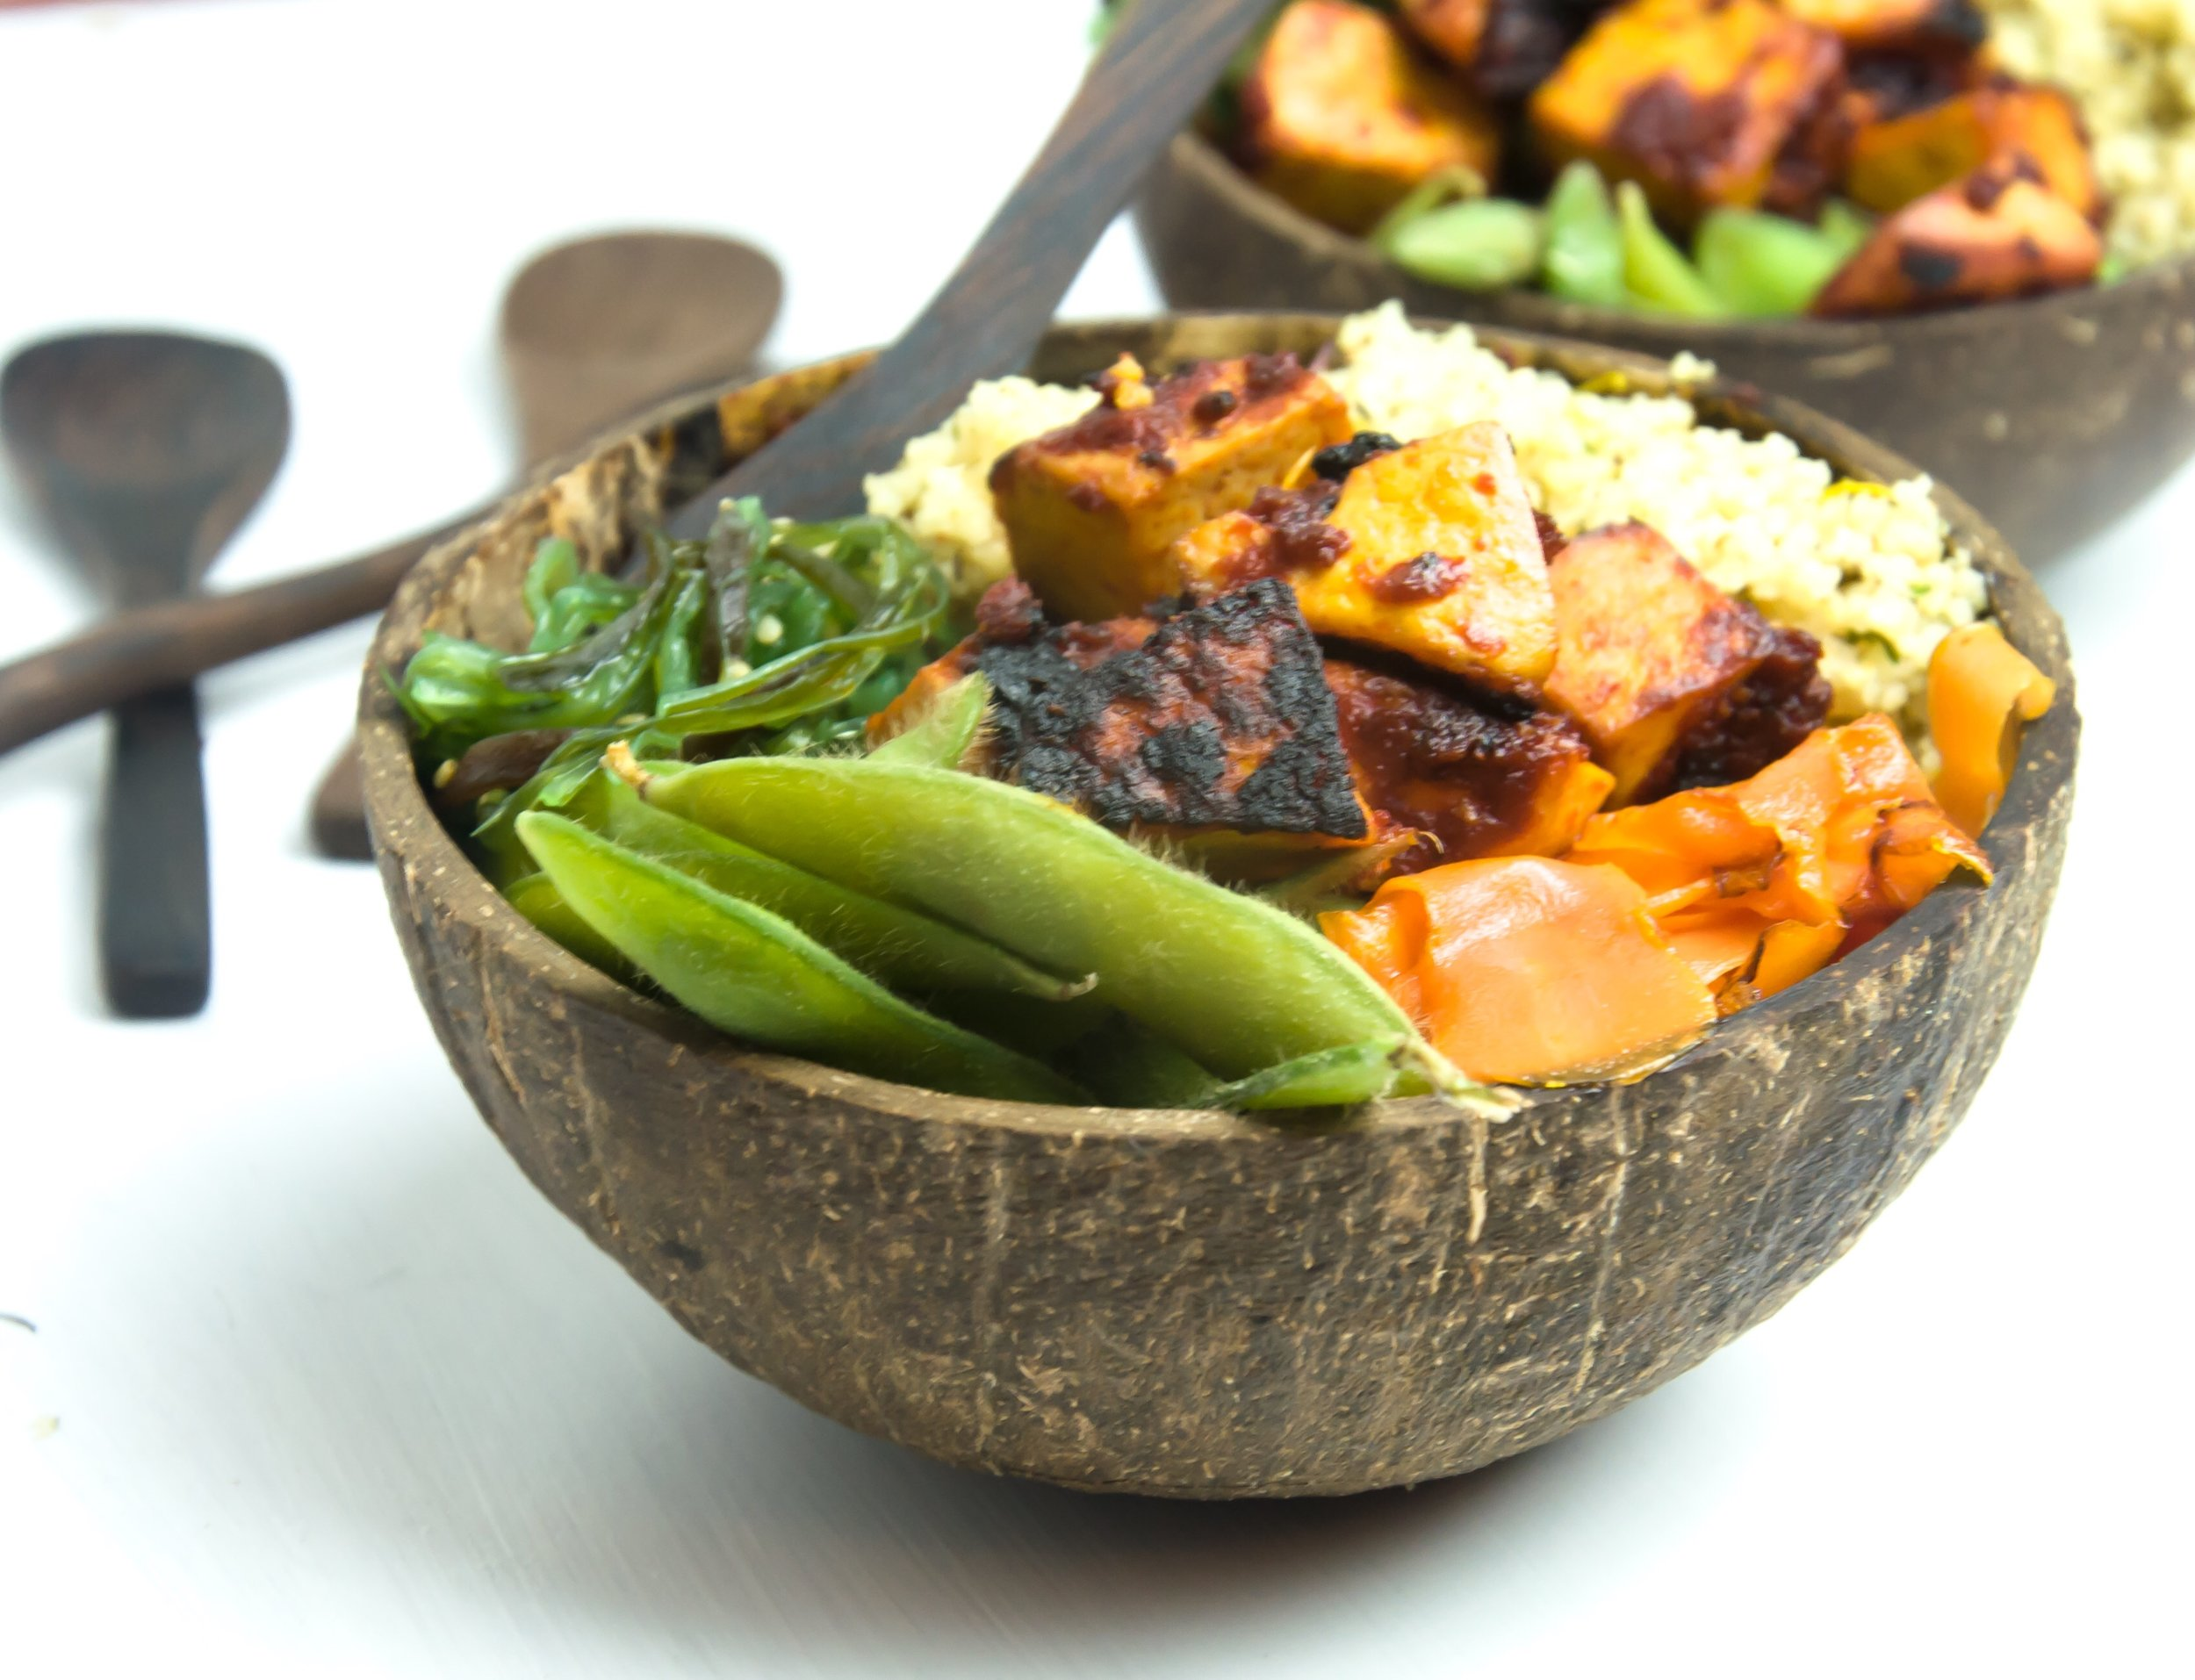 Served in eco-friendly coconut bowls